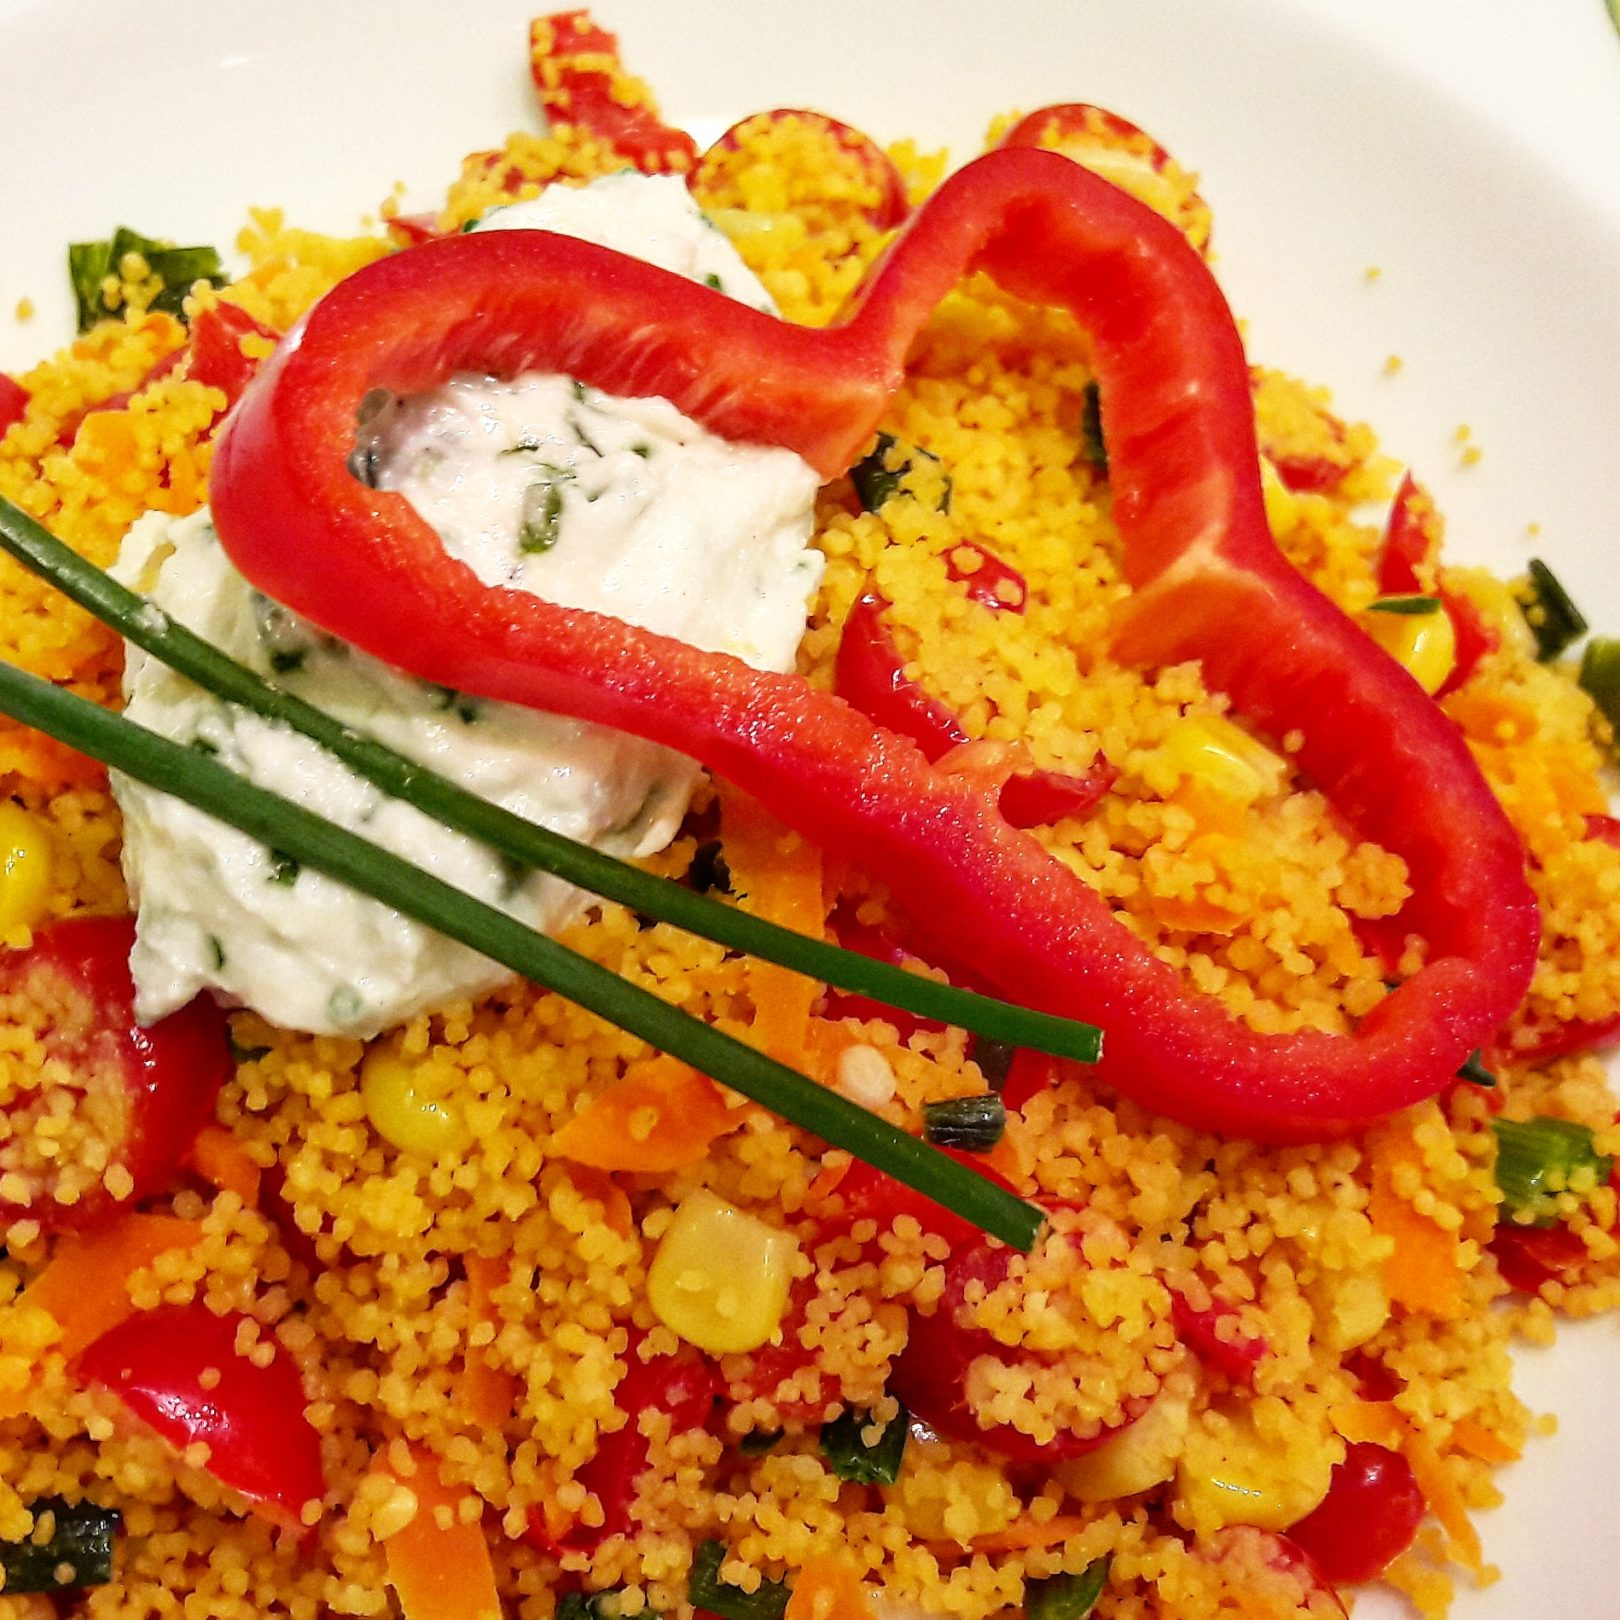 Couscous di ceci e lenticchie con verdure colorate e splamabile all'erba cipollina